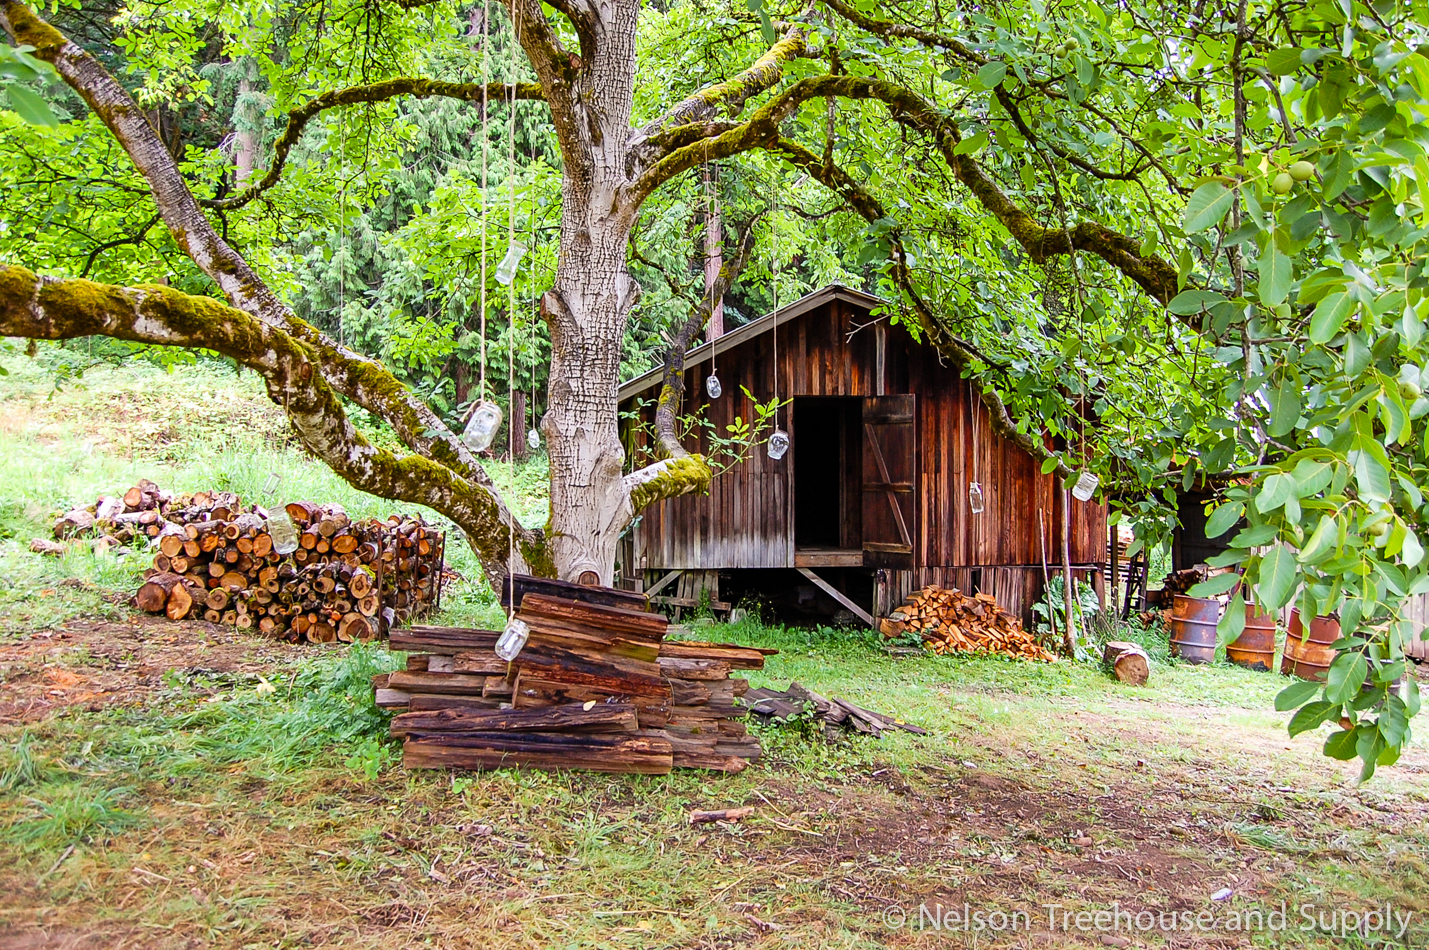 Butternut tree and old barn